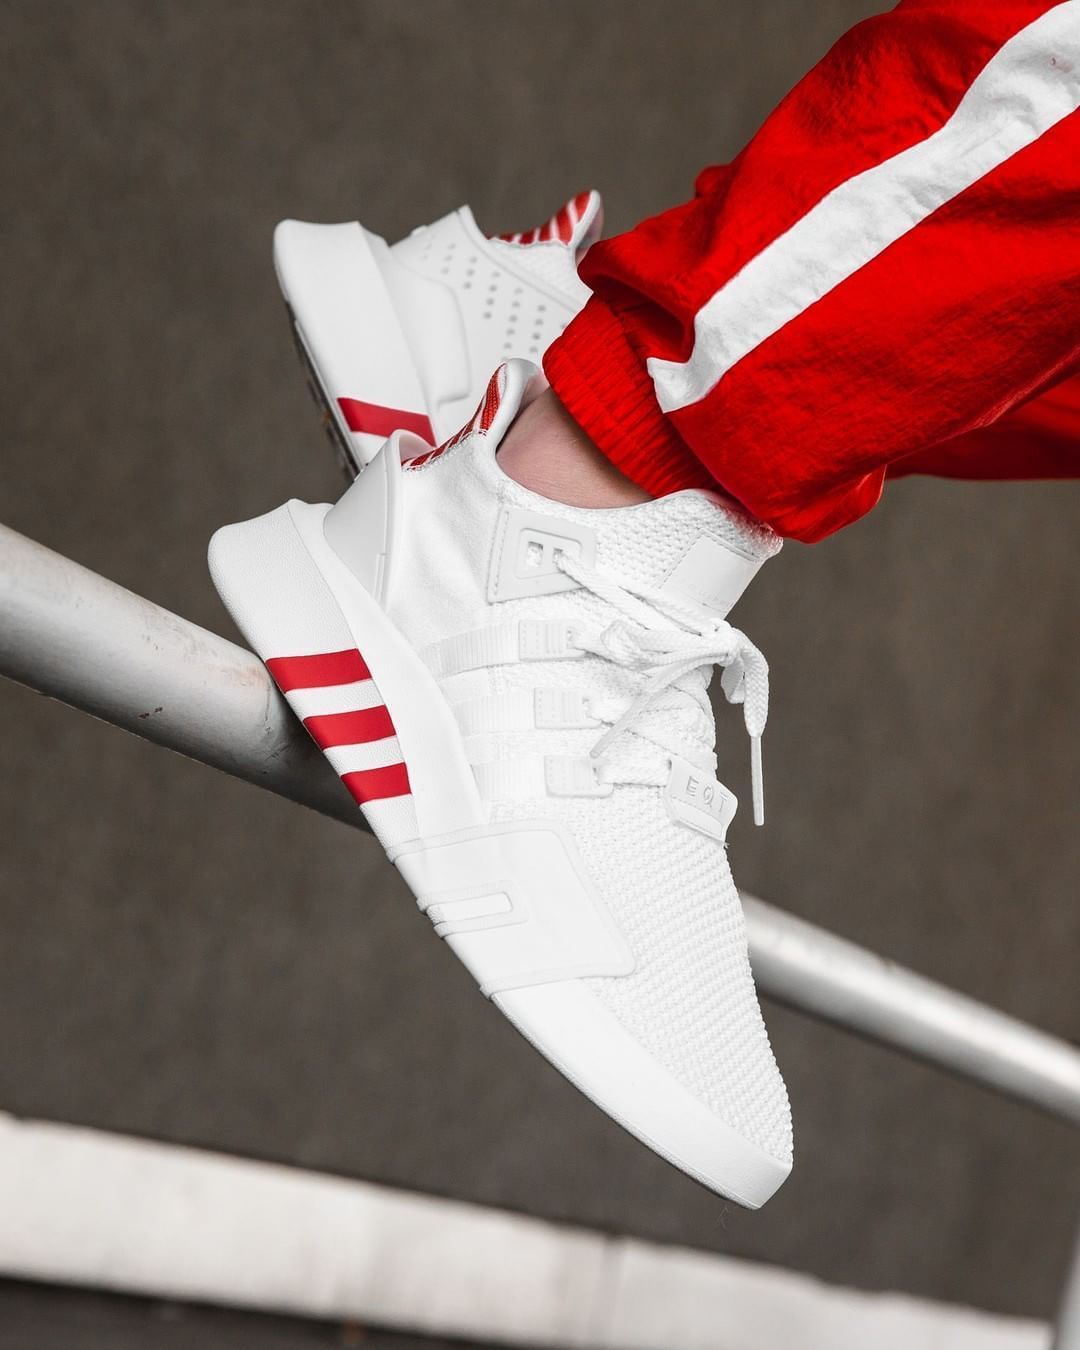 9ed921960bb6 Adidas EQT Bask ADV White   Trace Scarlet Credit   Overkill